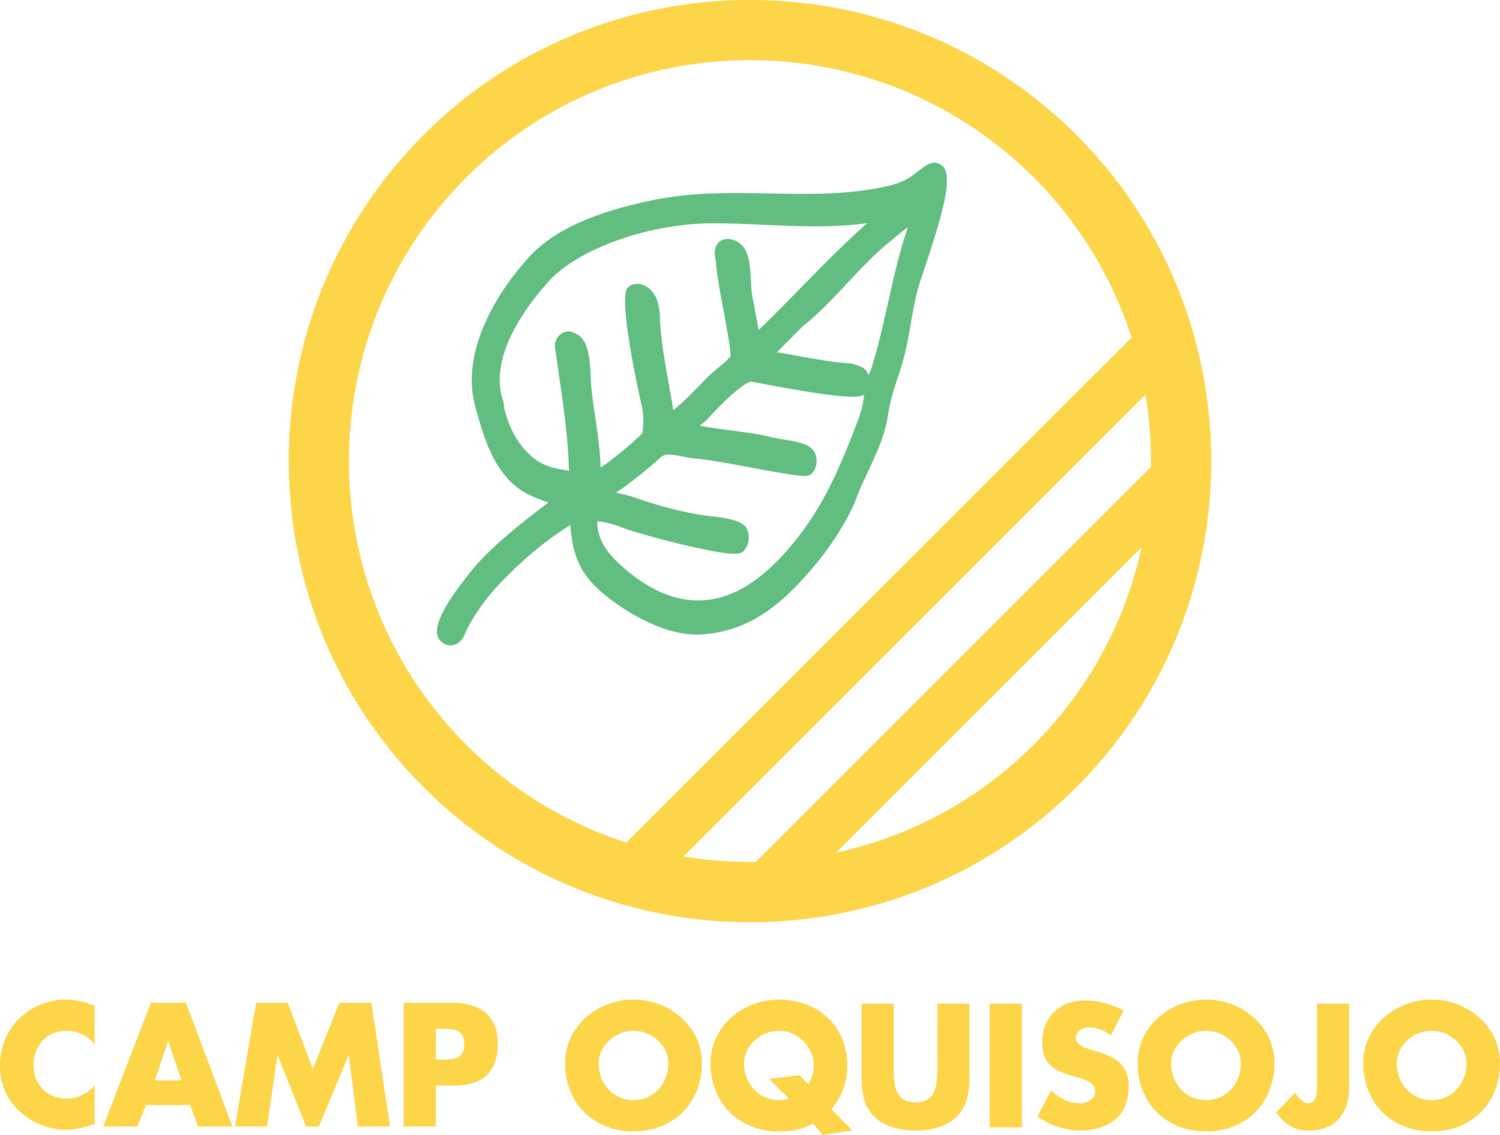 Camp Oquisojo